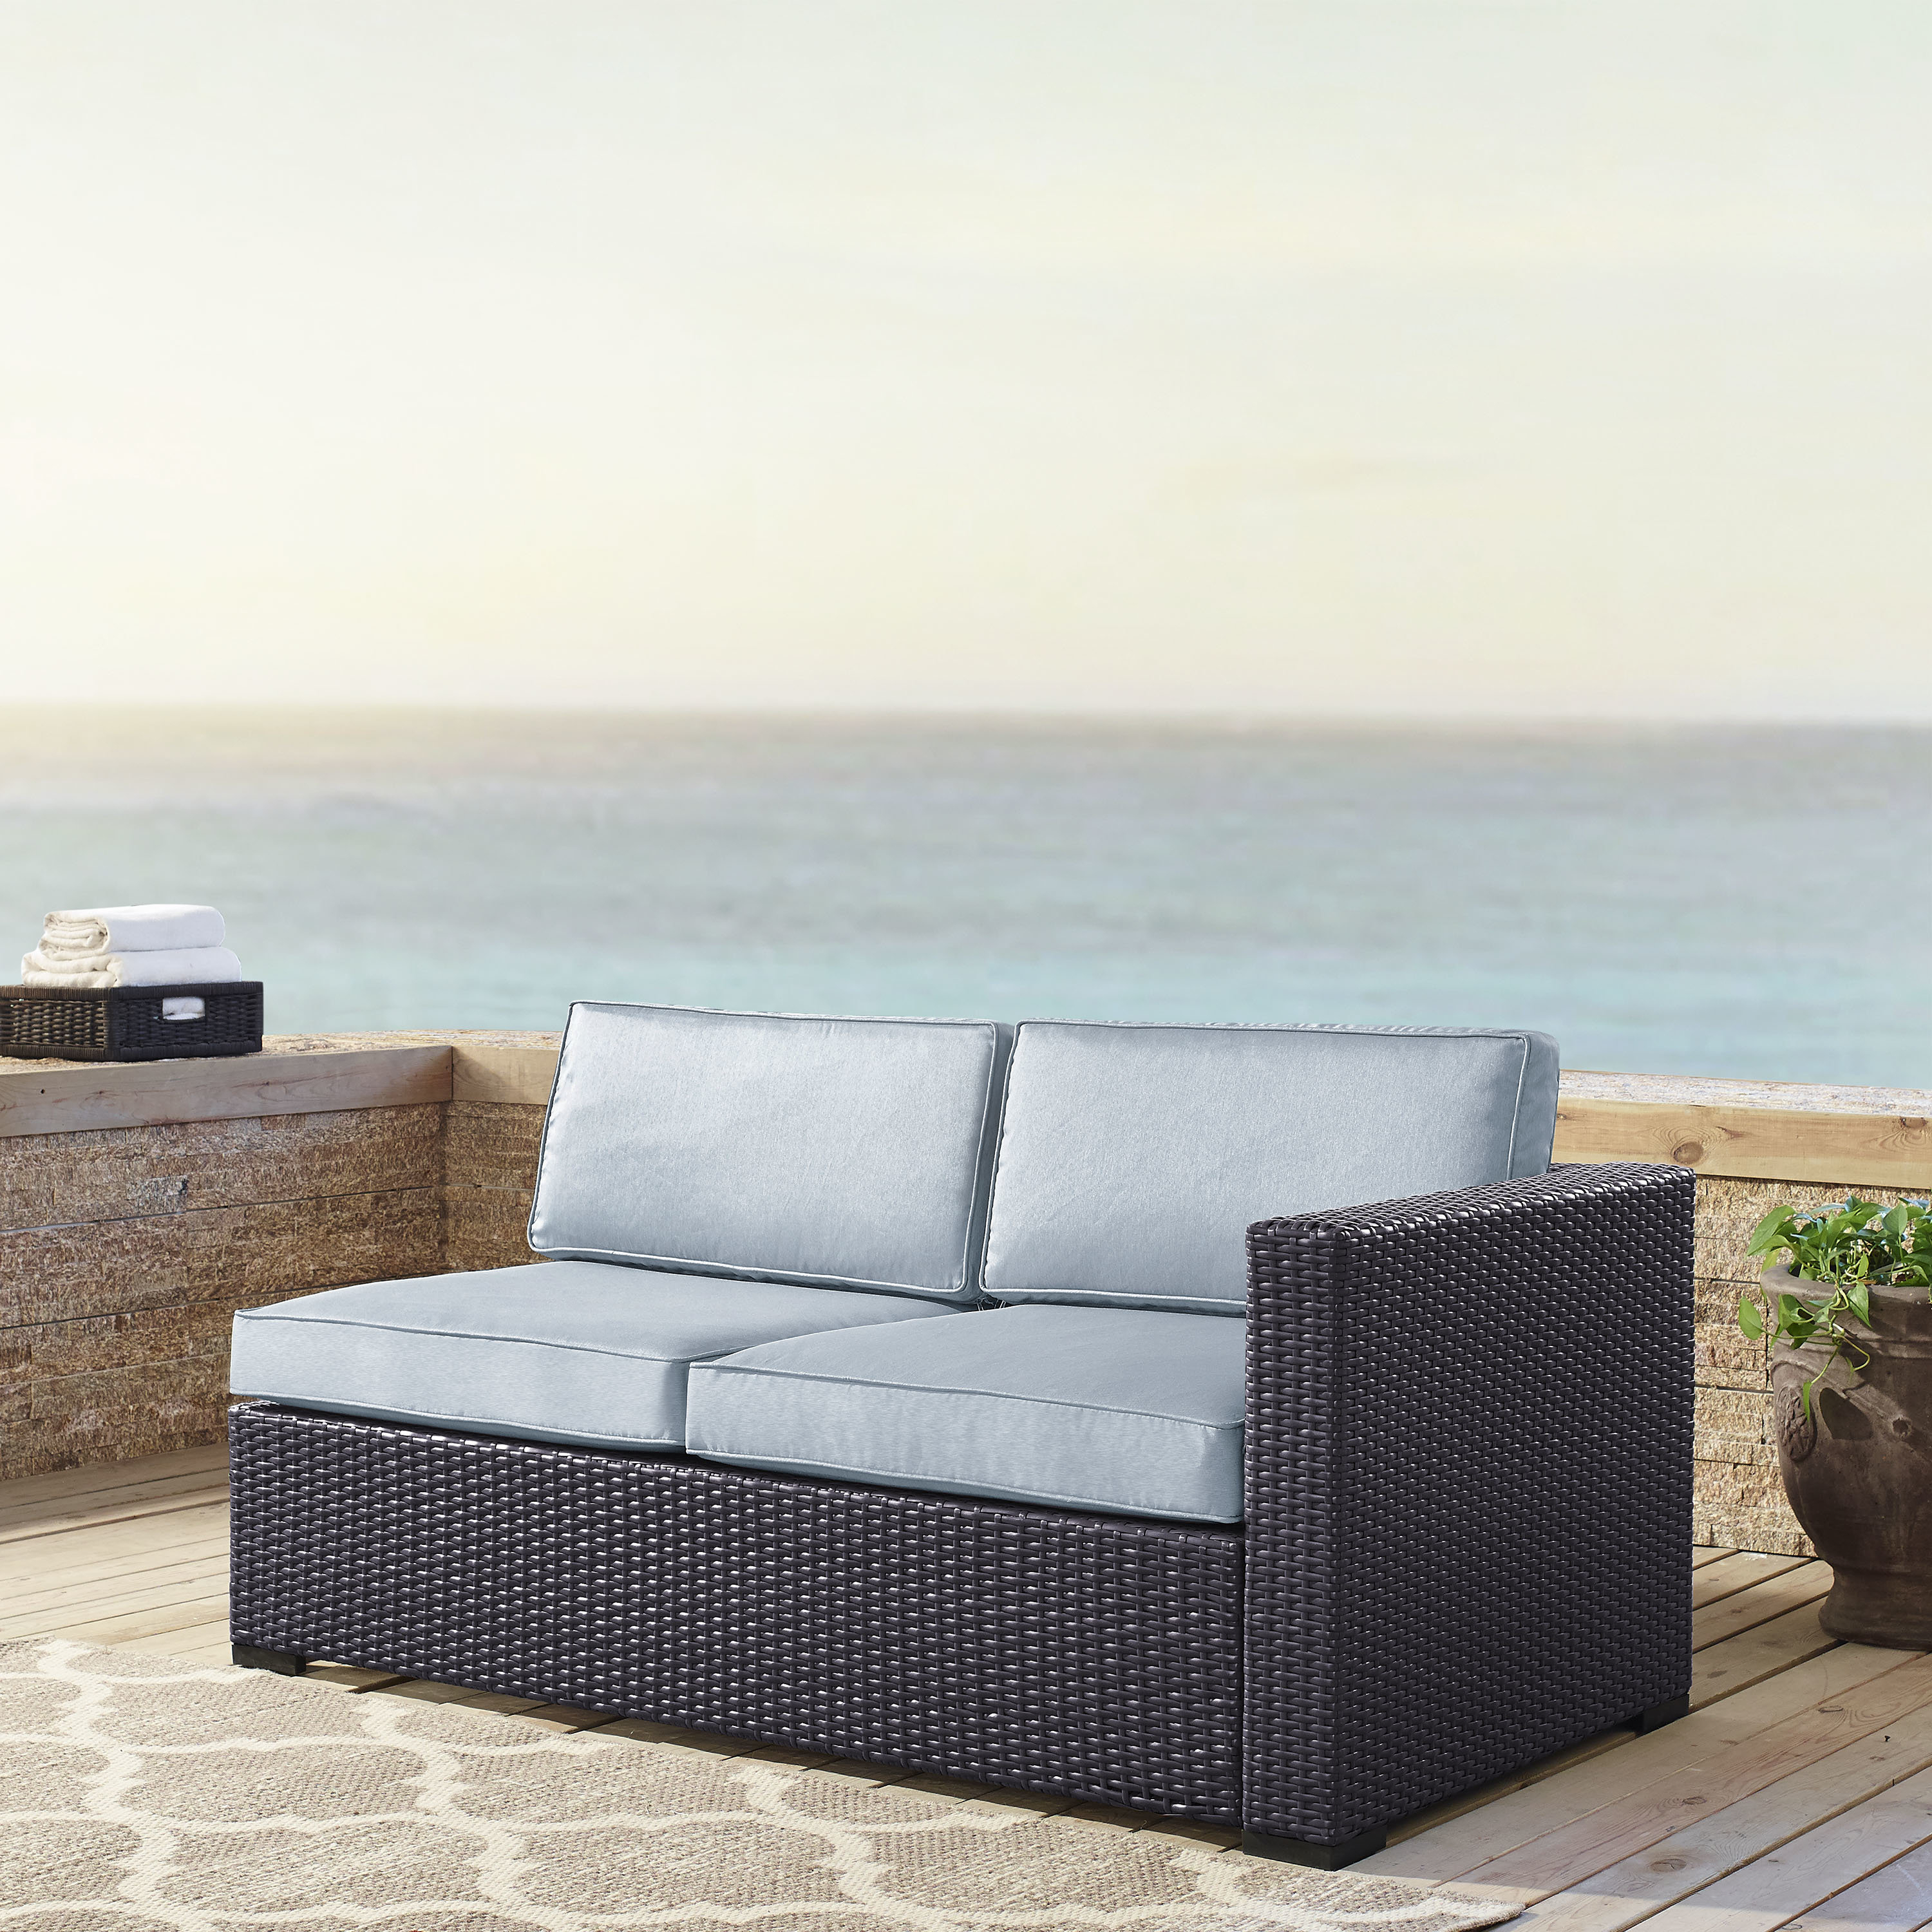 Most Recent Clifford Patio Sofas With Cushions Inside Seaton Loveseat With Cushions (View 10 of 20)